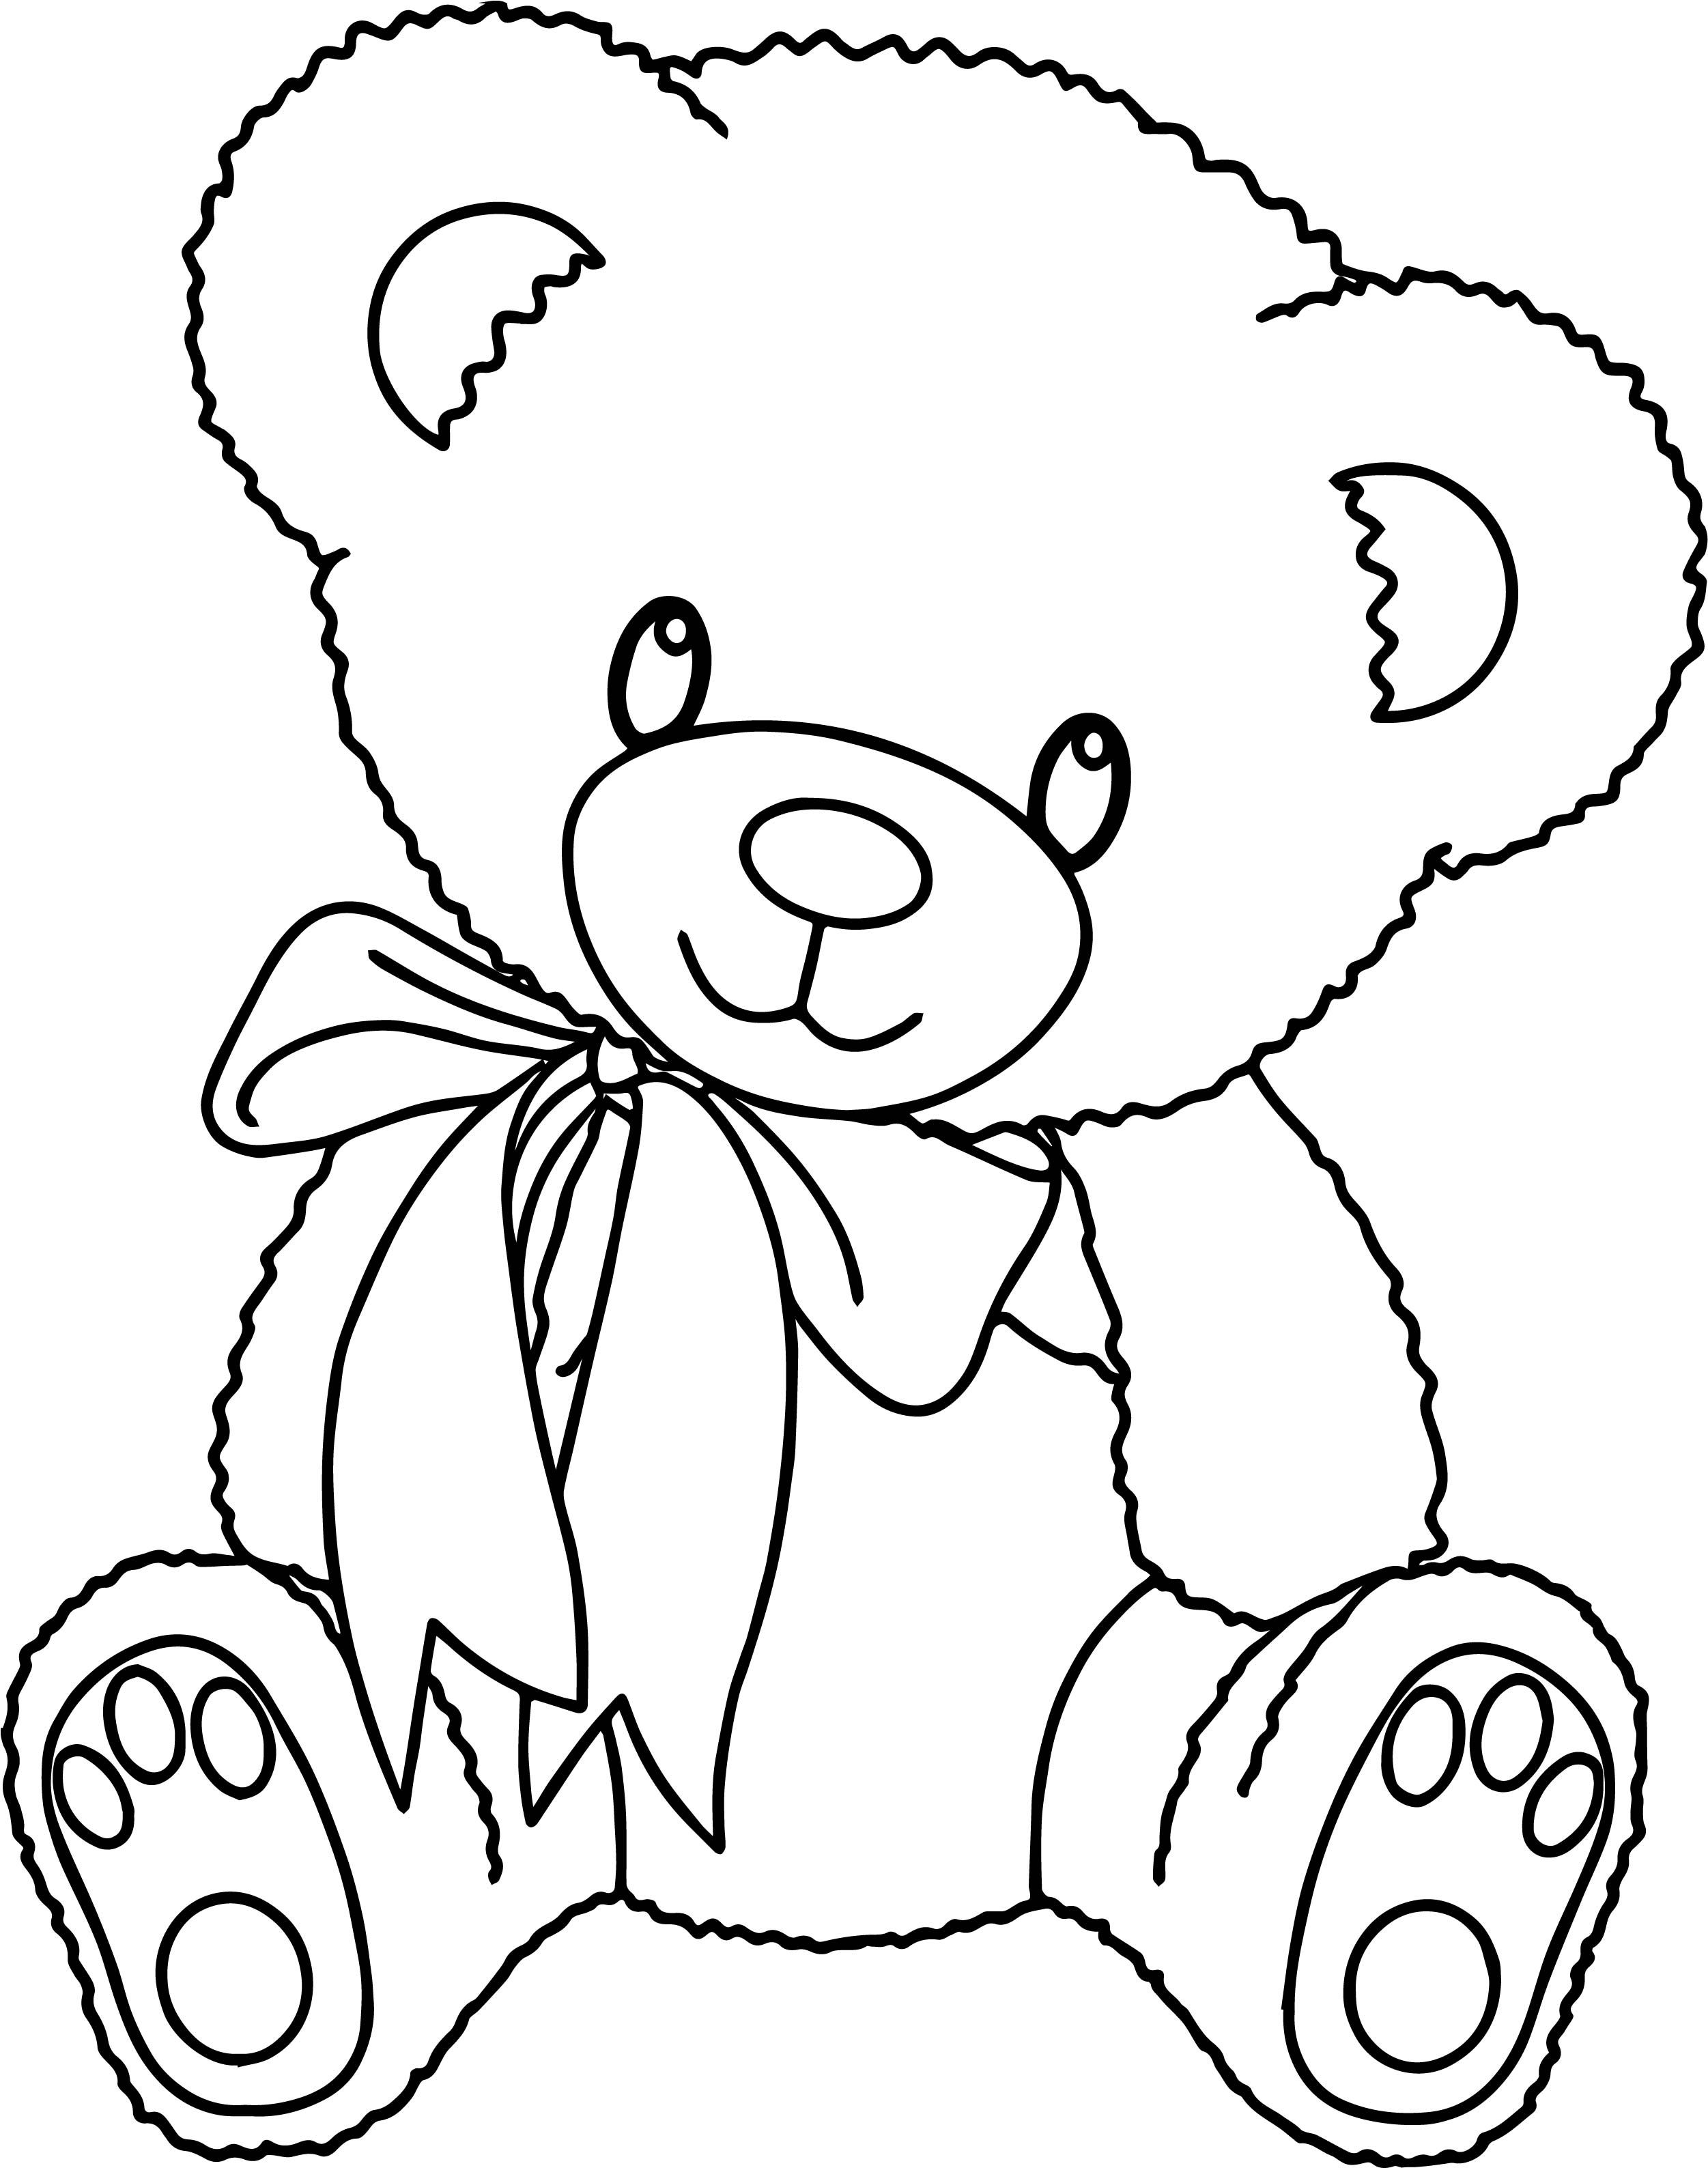 cool Bear Toy Family Coloring Page Bear coloring pages